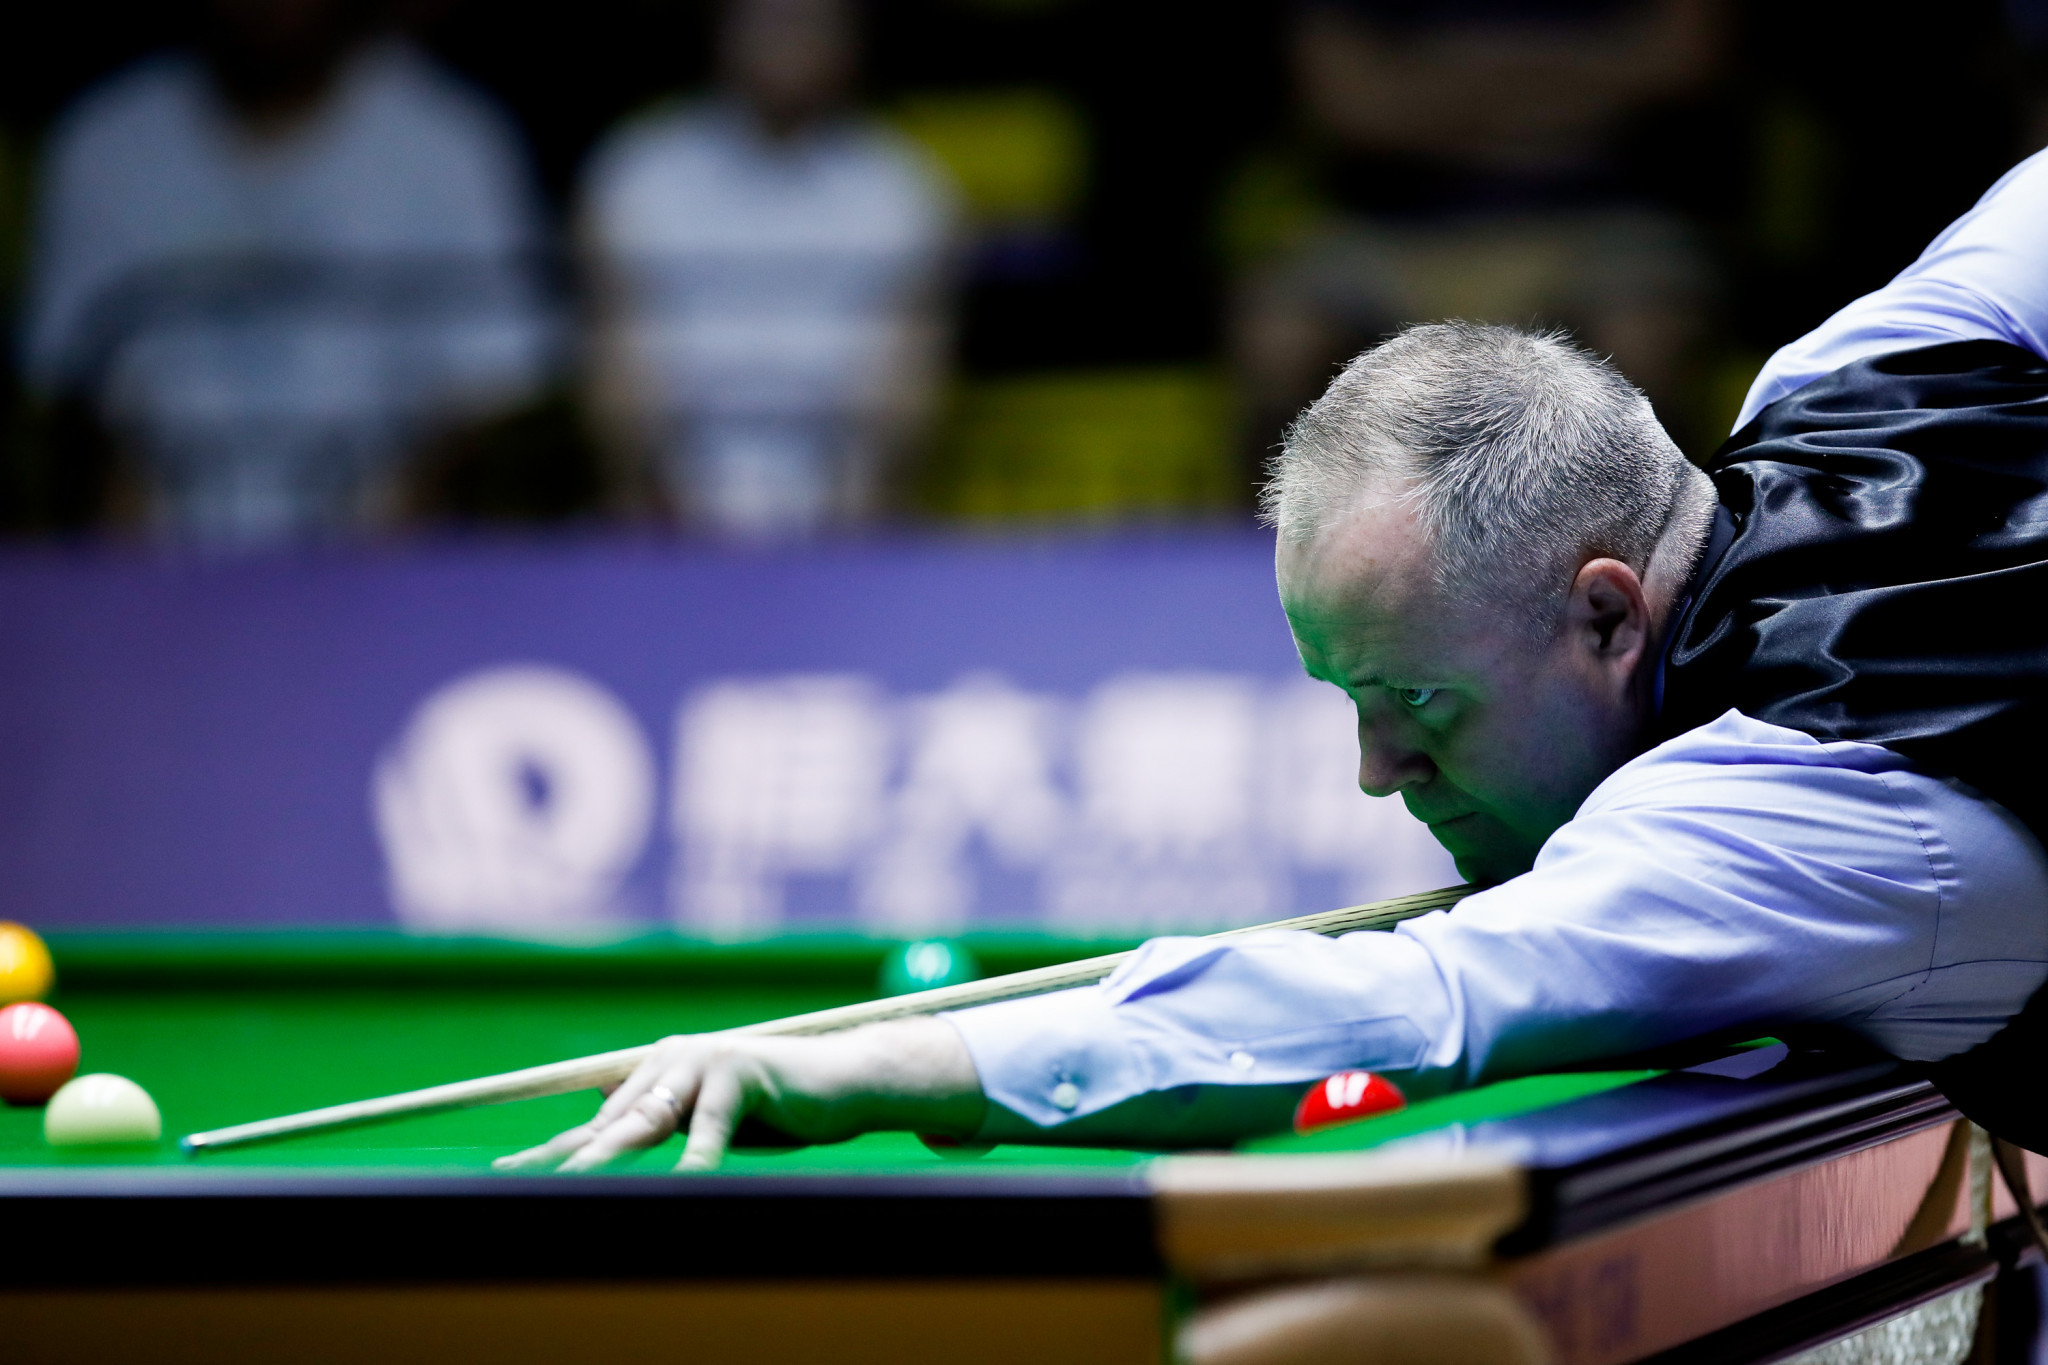 The WSF was launched to improve snooker's Olympic prospects ©Getty Images